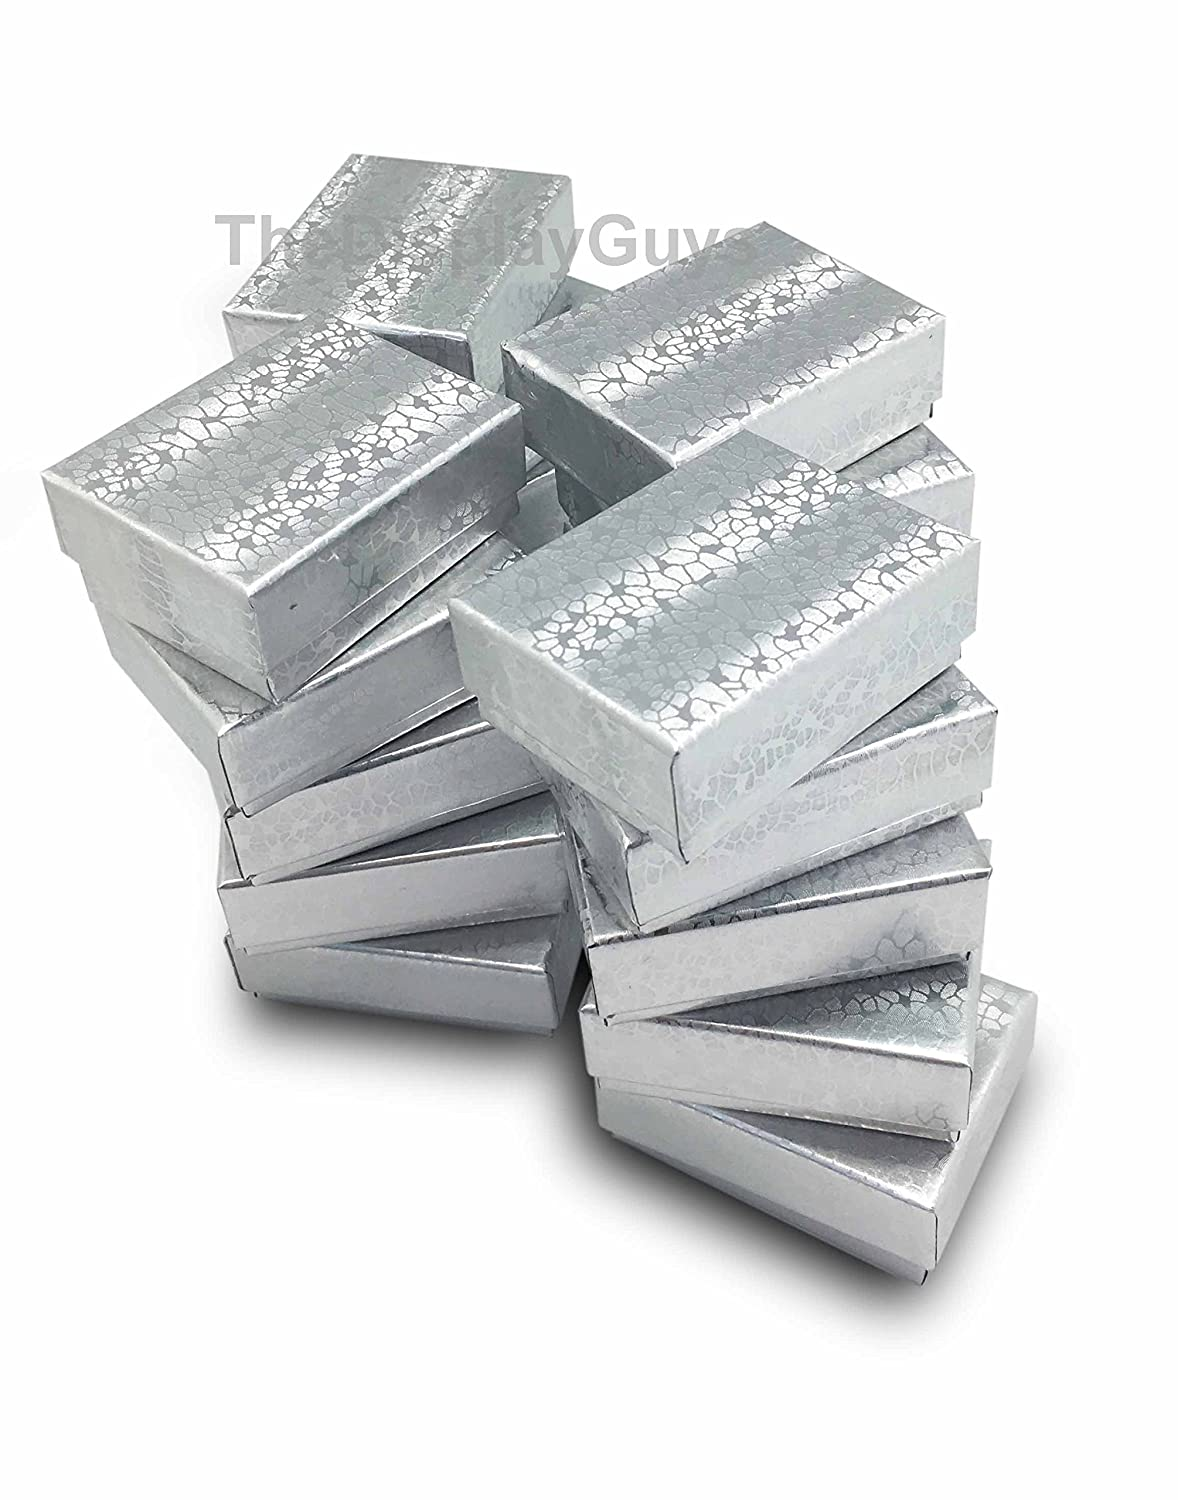 The Display Guys~ Pack of 100 Cotton Filled Cardboard Paper SILVER Jewelry Box Gift Case - Silver Foil (2 5/8x1 1/2x1 inches #21) JPI Display